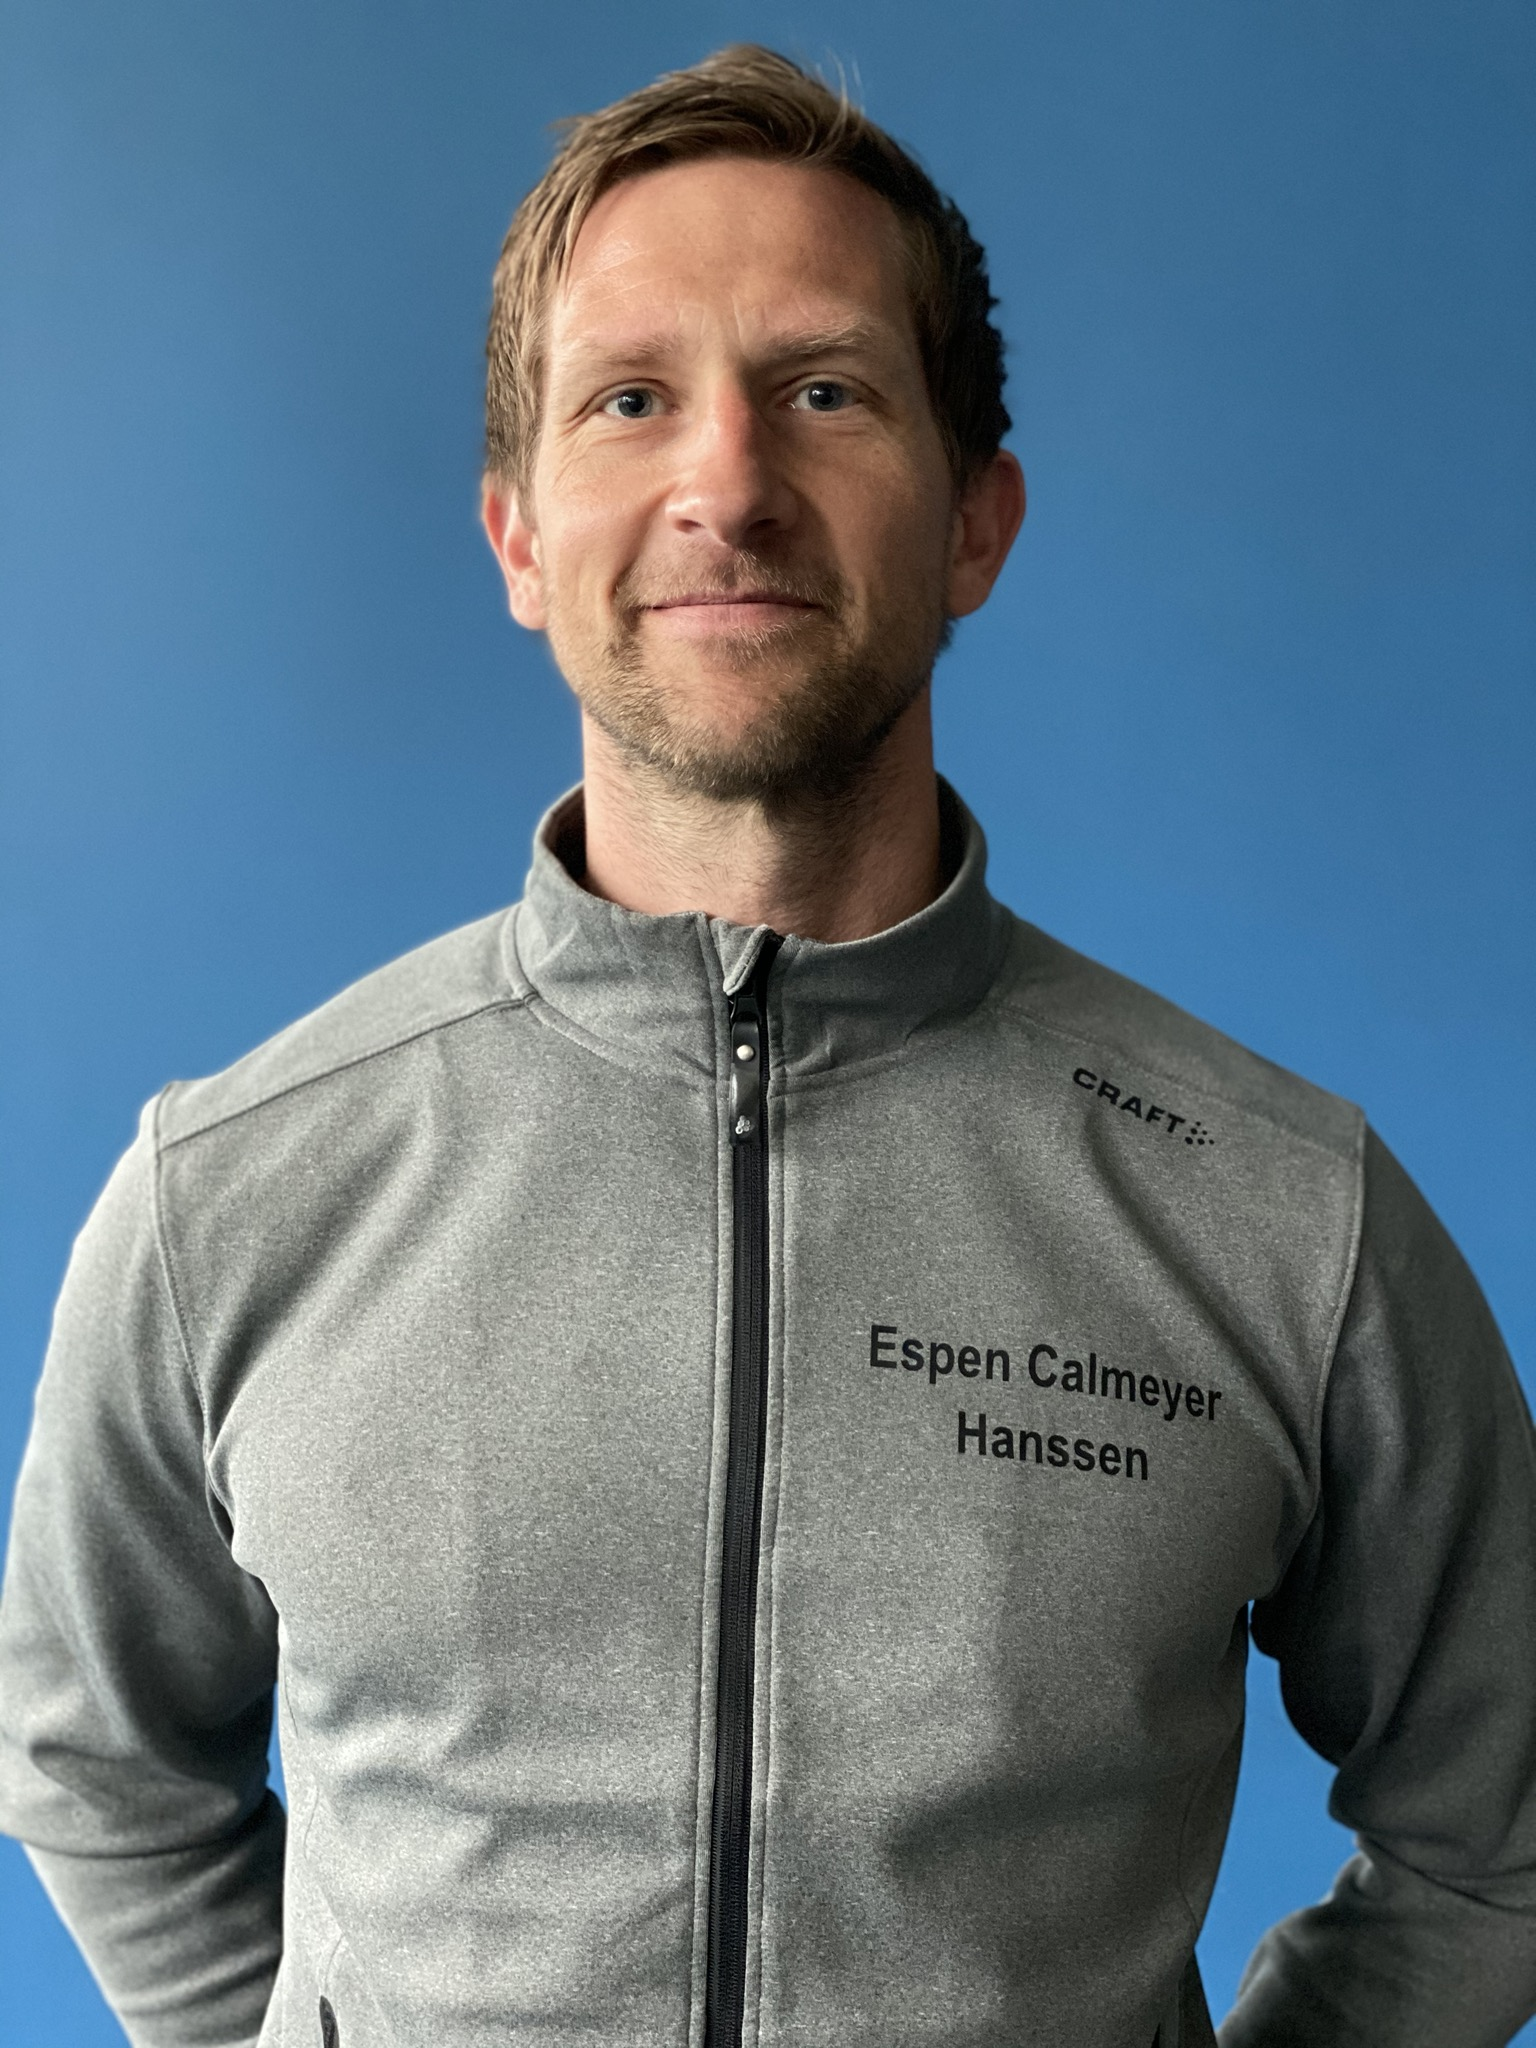 ESPEN CALMEYER HANSSEN